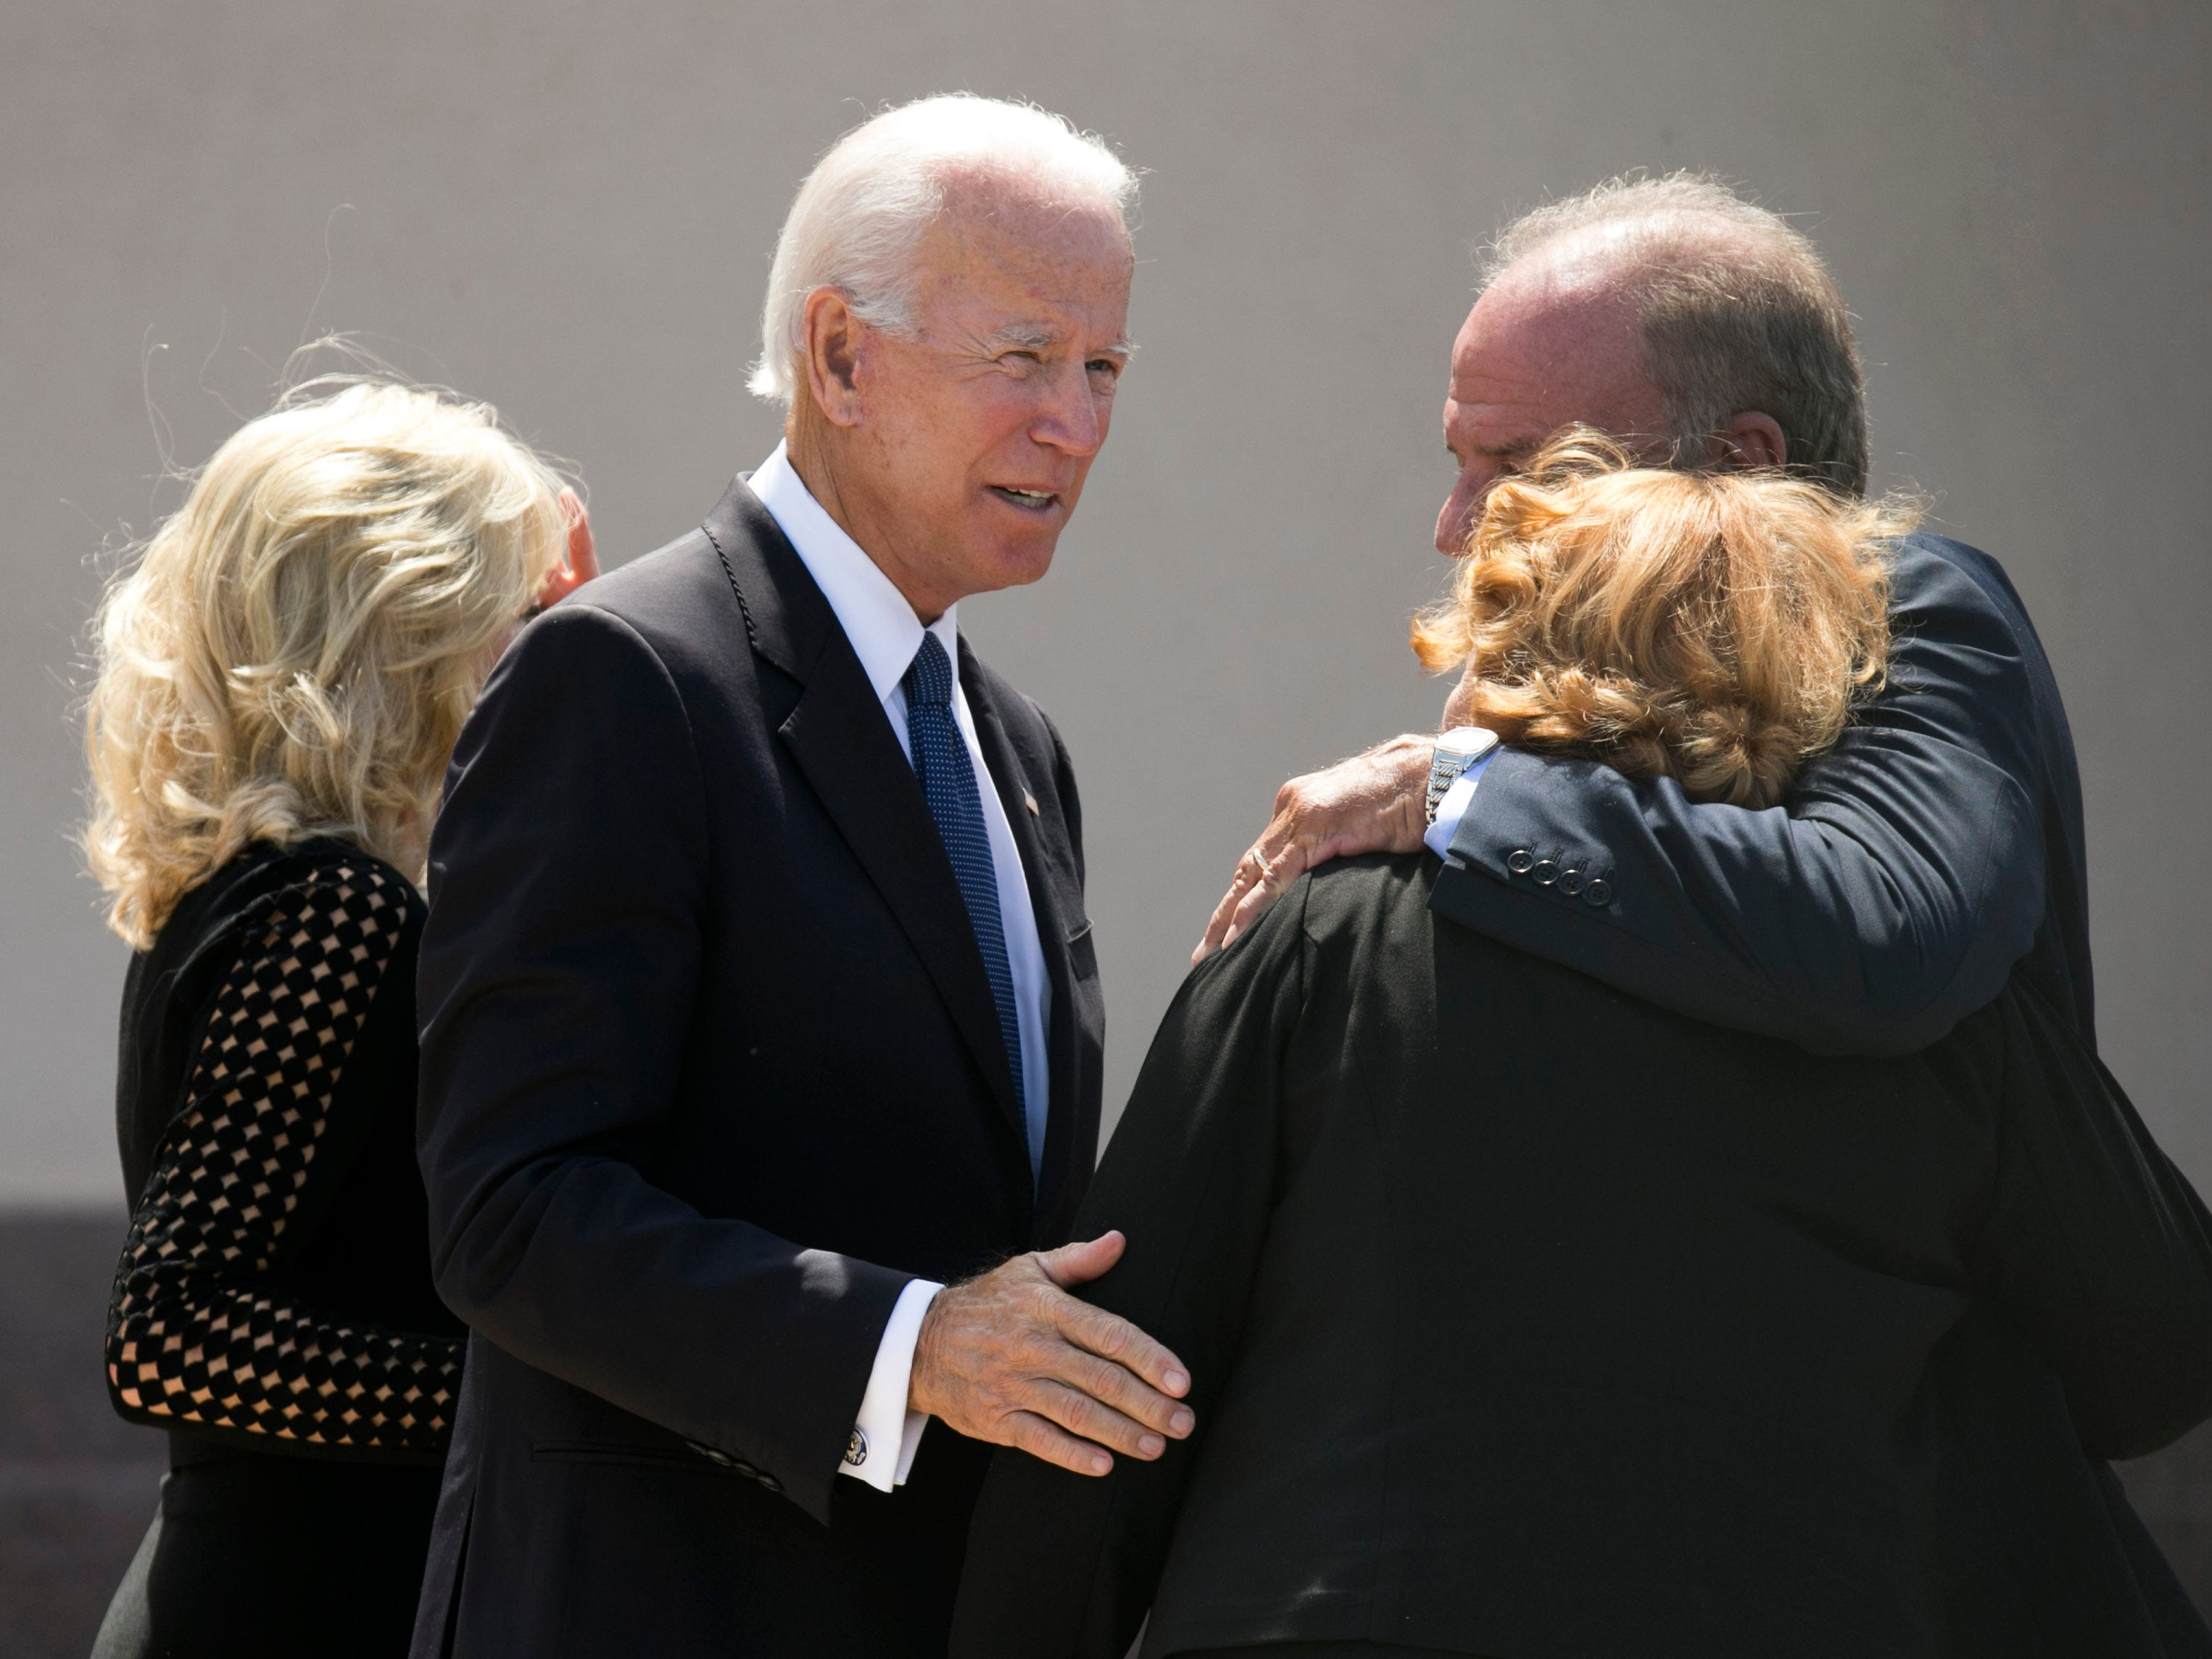 Former Vice President Joe Biden greets people following a memorial service for Sen. John McCain at North Phoenix Baptist Church, Aug. 30, 2018, in Phoenix.